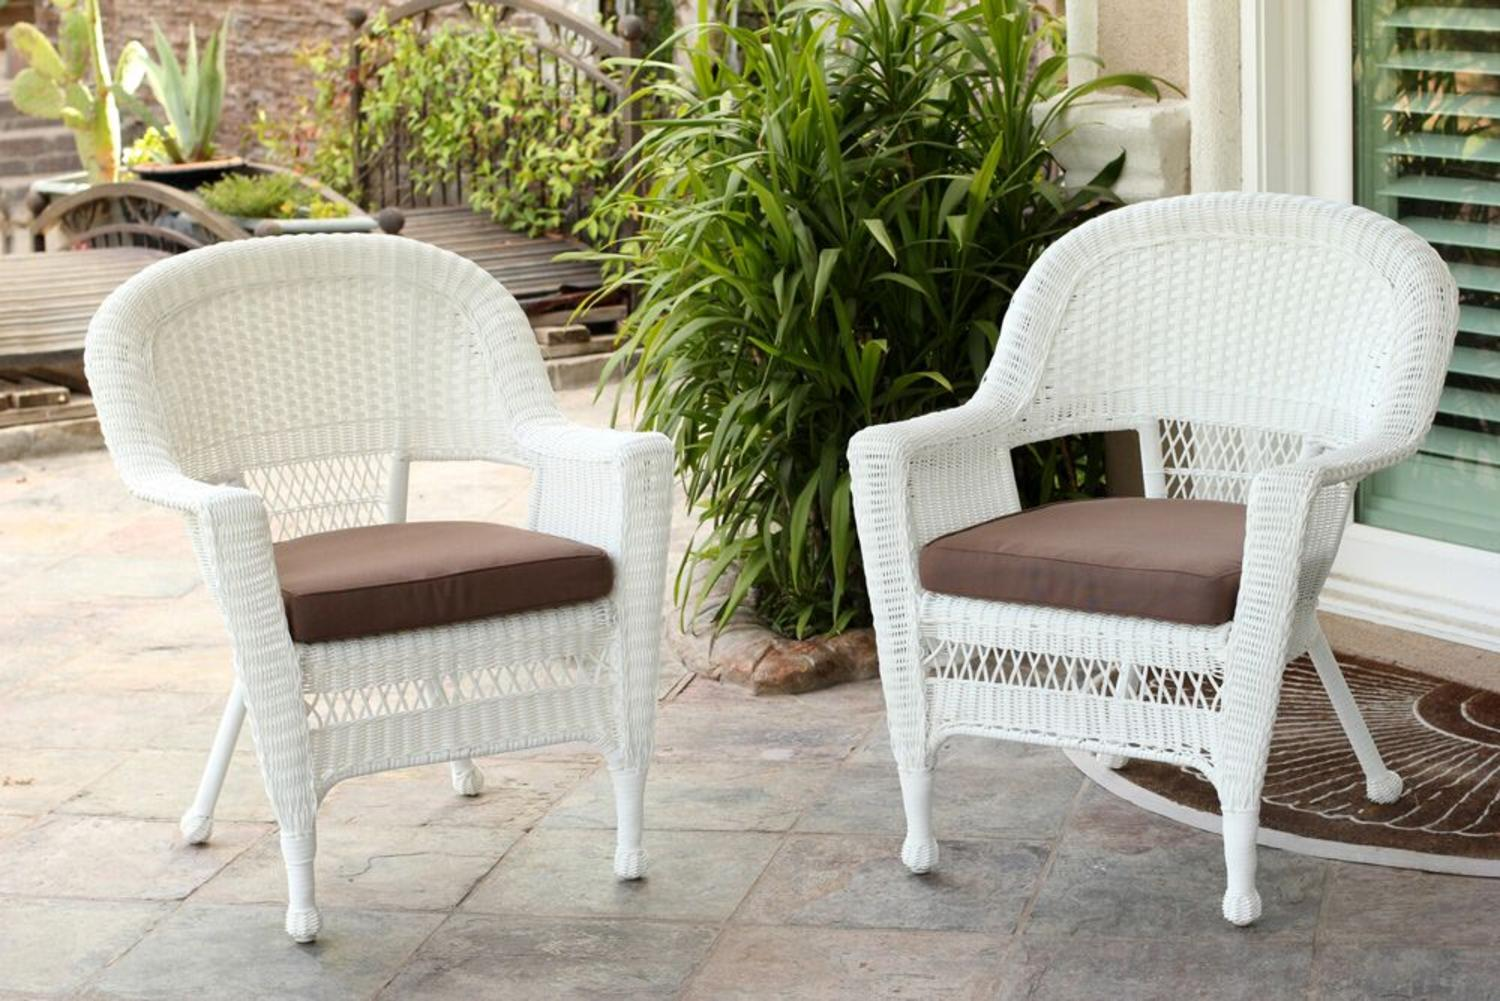 Set Of 2 White Resin Wicker Outdoor Patio Garden Chairs   Mocha Brown  Cushions